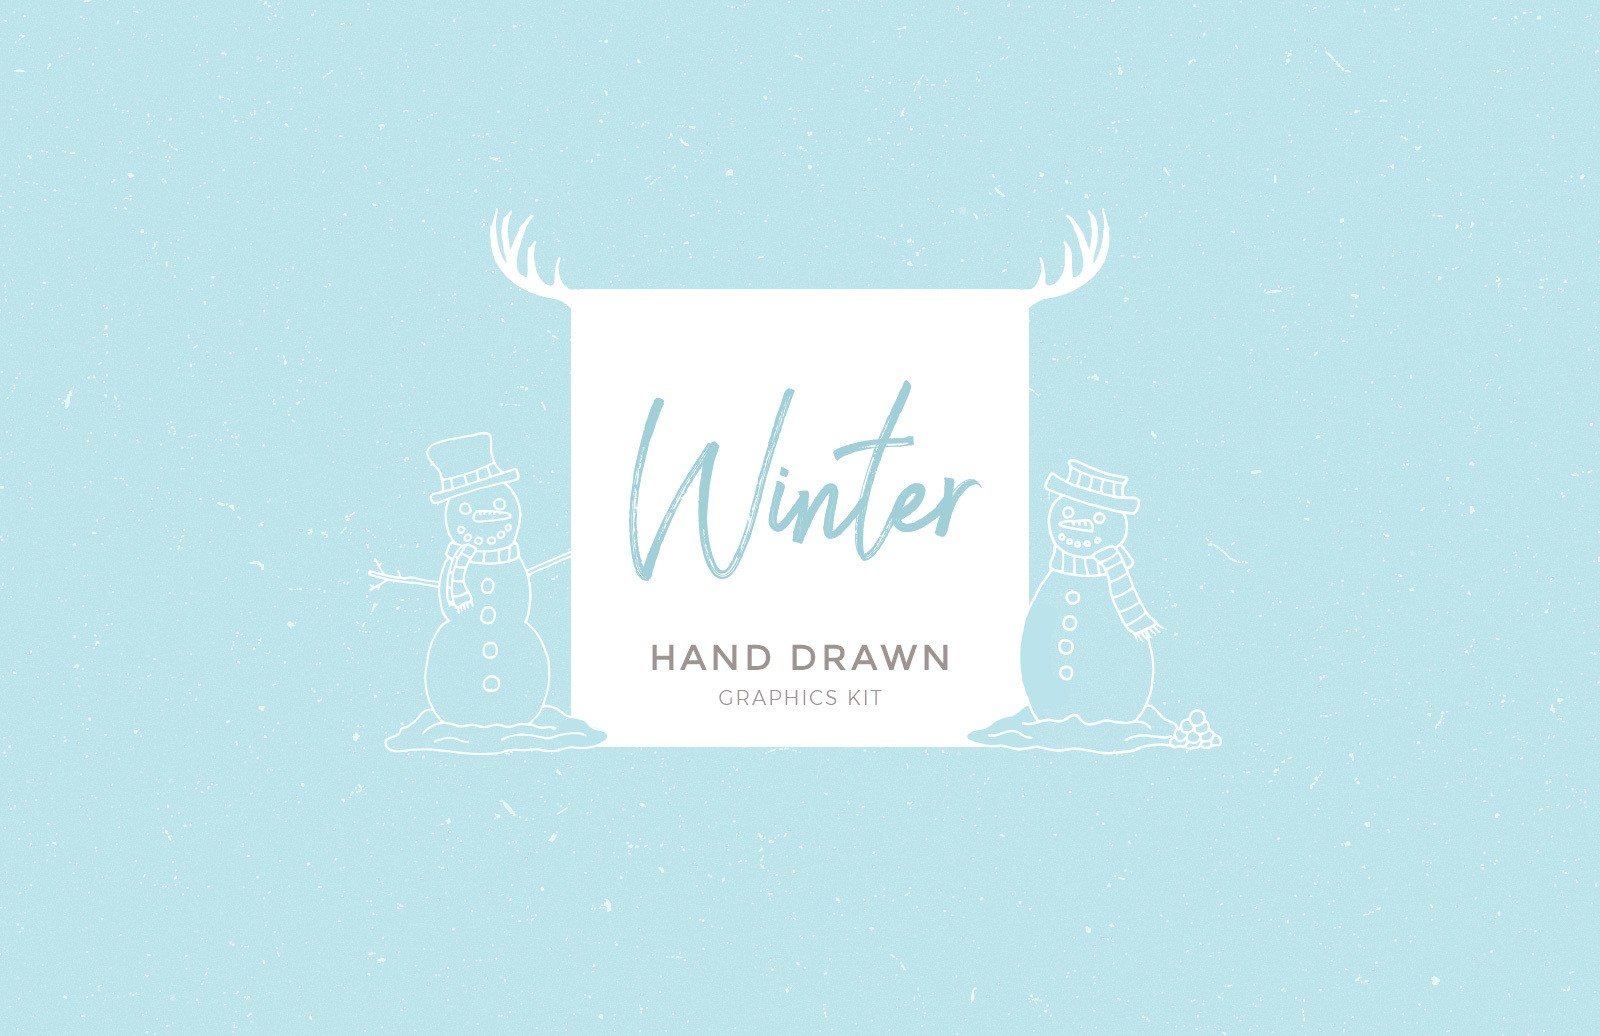 Hand Drawn Winter Graphics